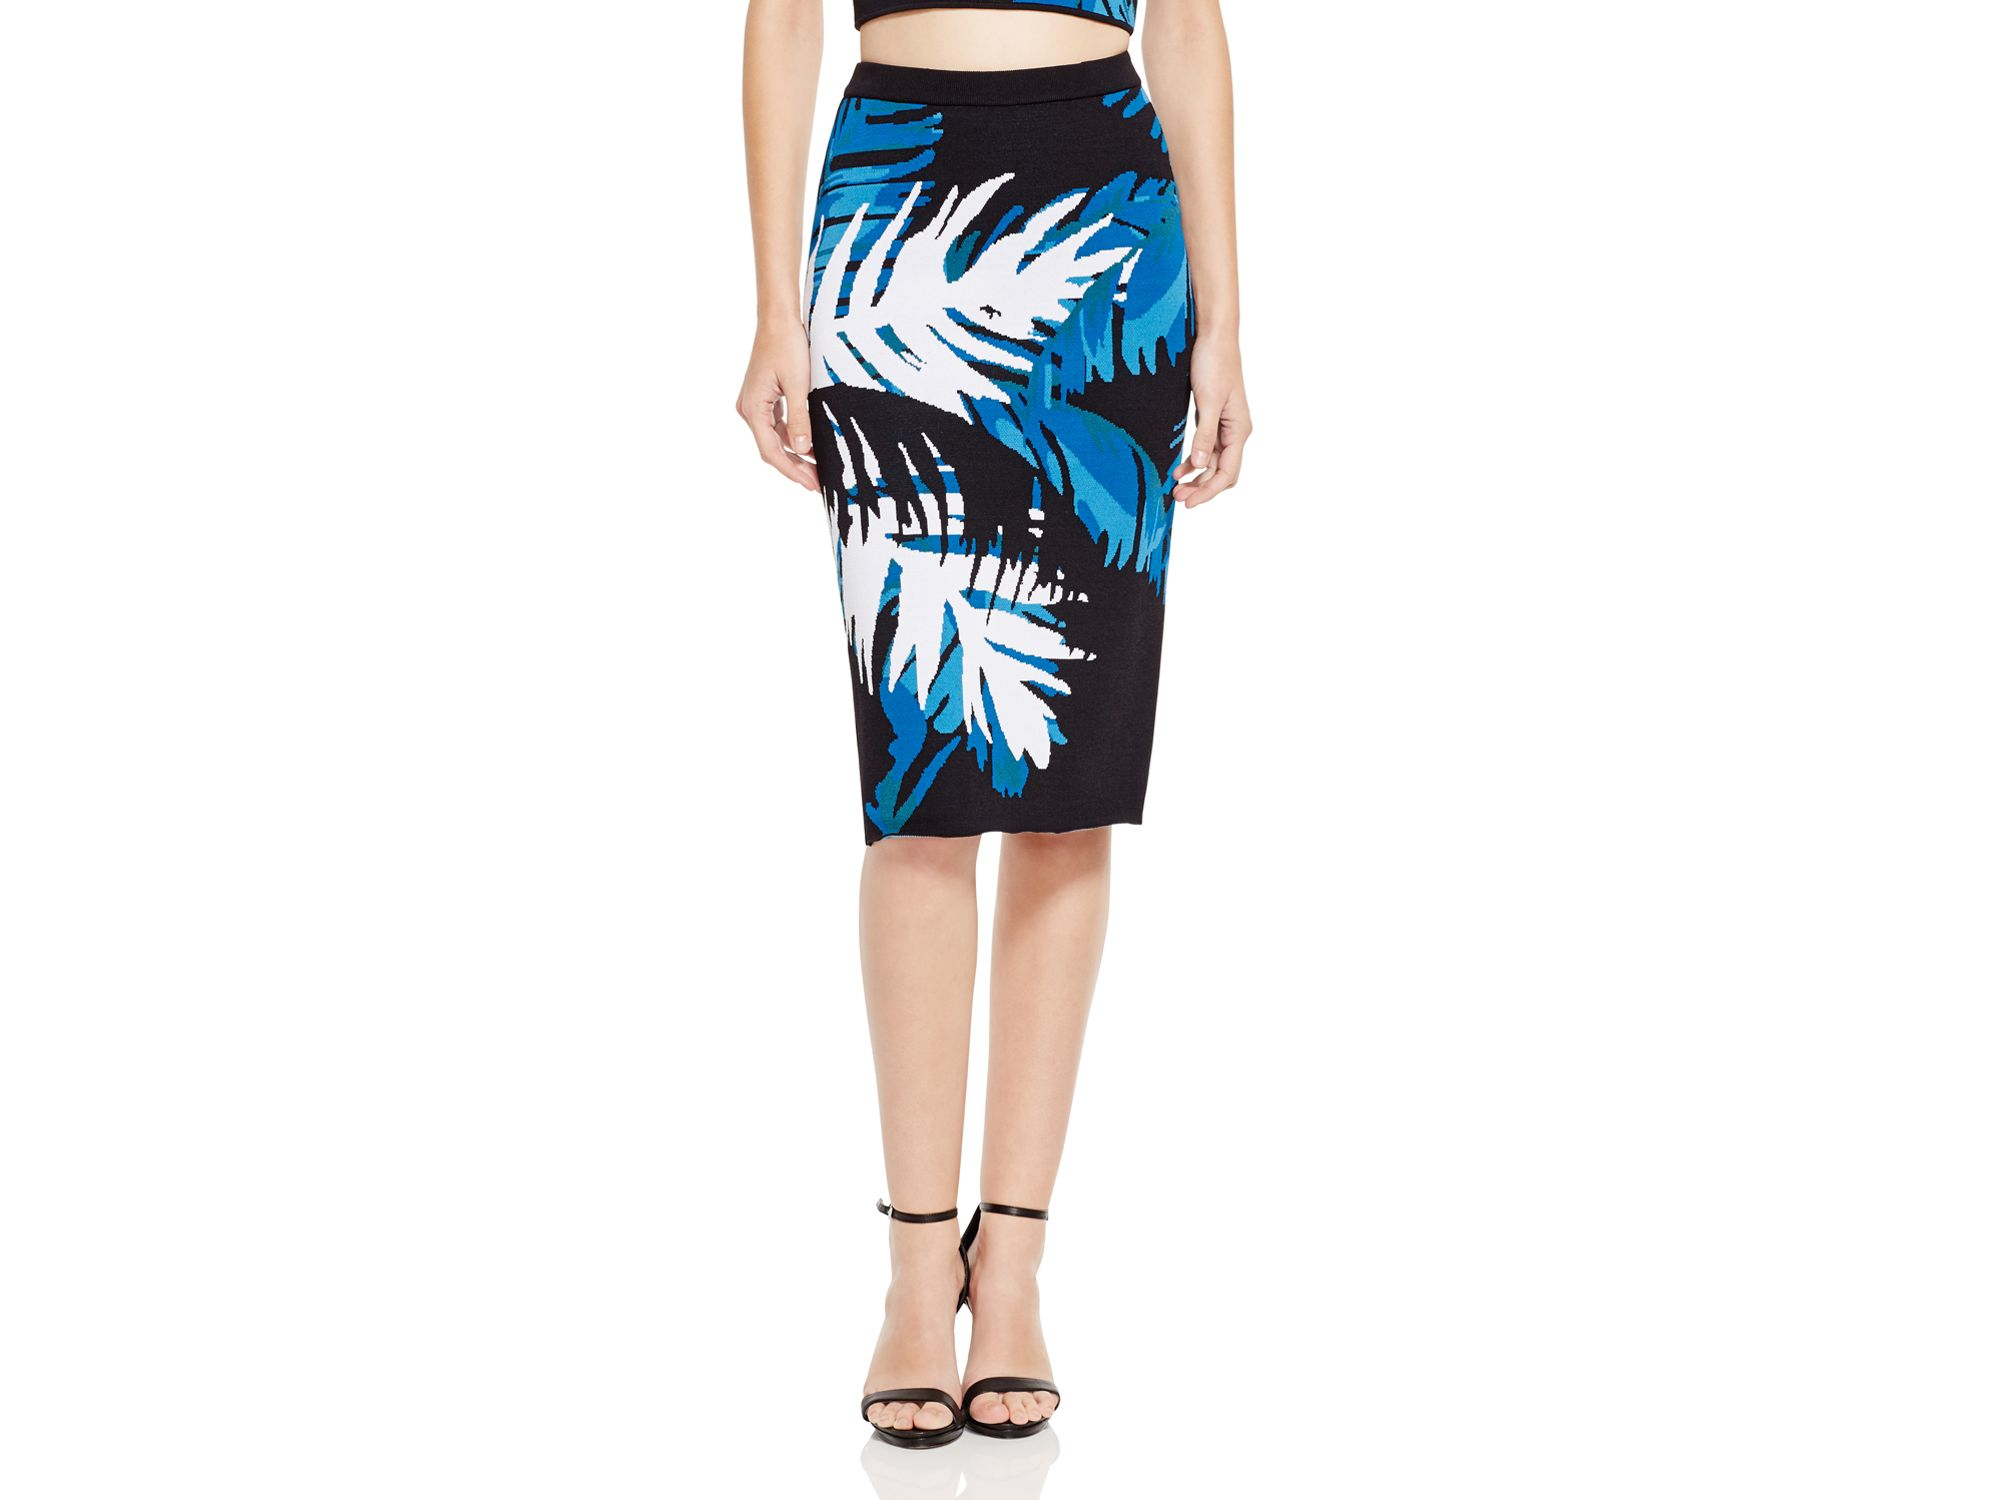 Timo weiland Leaf Patterned Pencil Skirt in Blue | Lyst